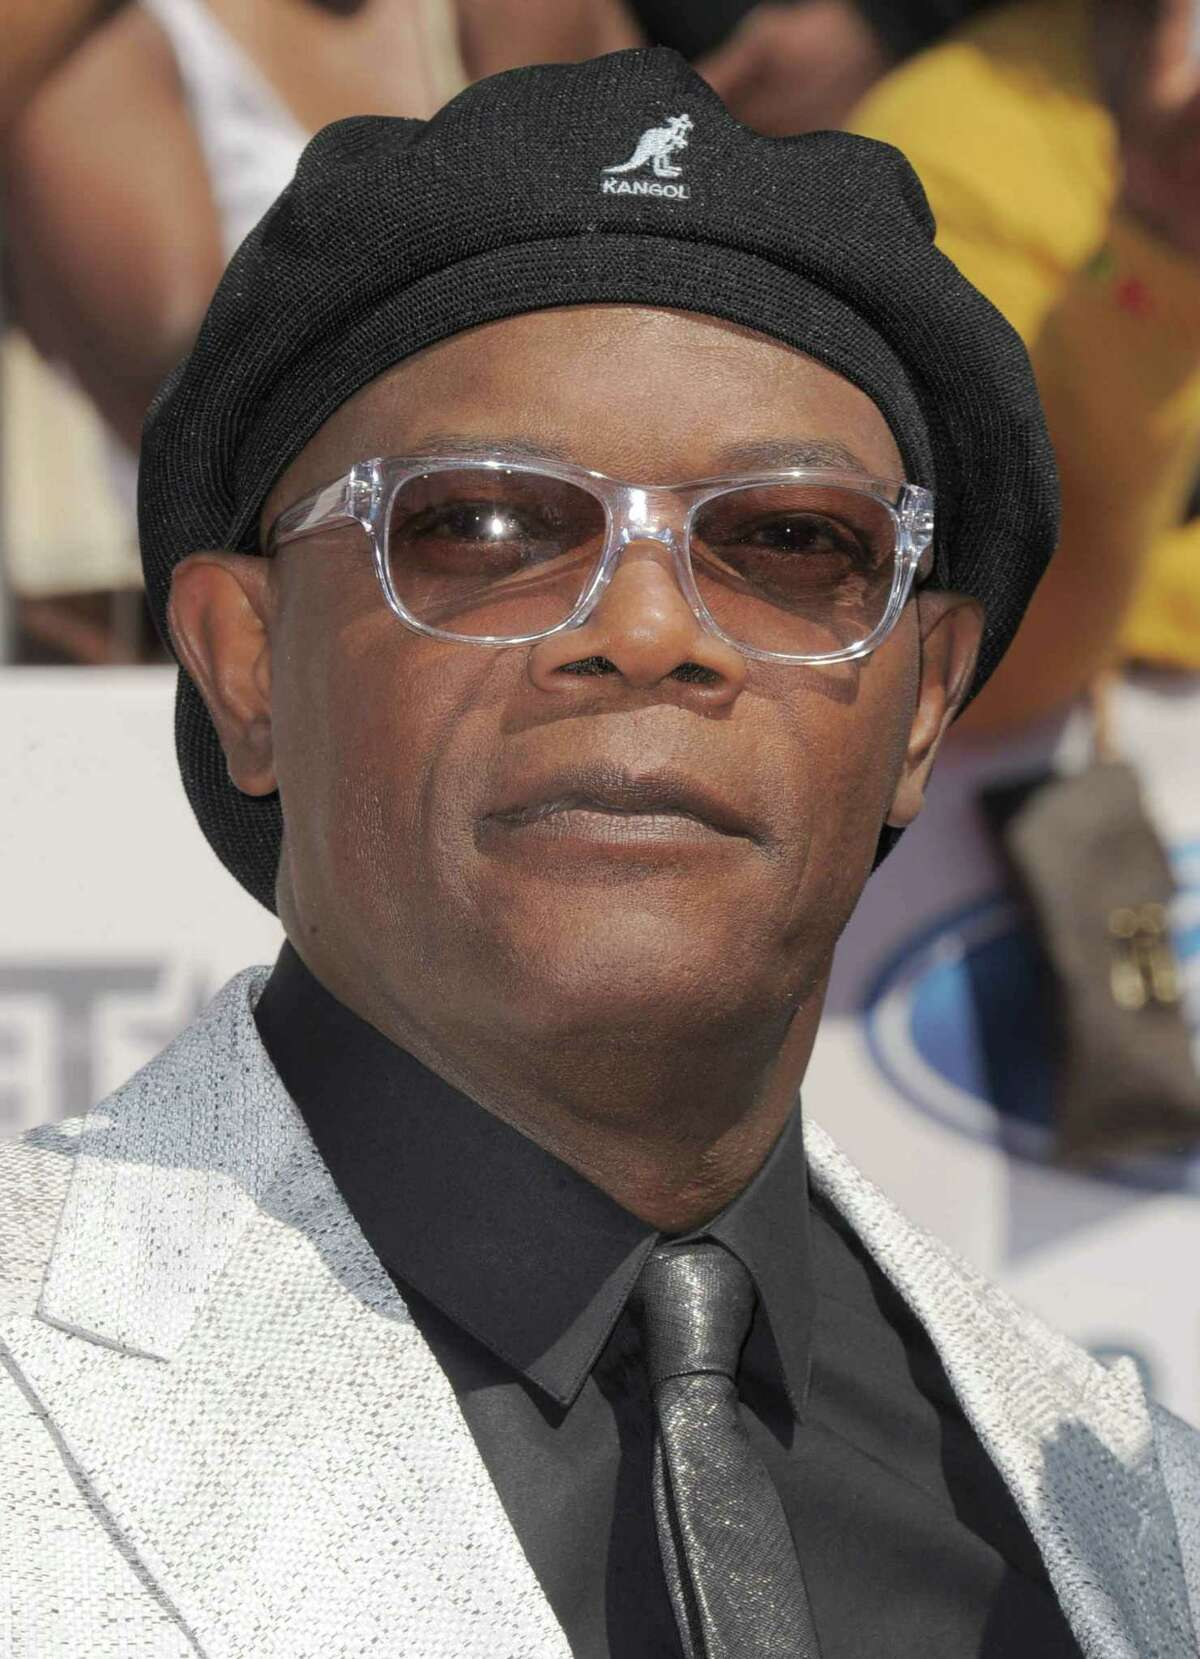 FILEv - Samuel L. Jackson arrives at the BET Awards on Sunday, July 1, 2012, in Los Angeles. The Spike Video Game Awards announced Thursday, Nov. 29, 2012 that the gaming extravaganza's previous emcees would join Aƒa€šA'a€œThe AvengersAƒa€šA'a€ star and four-time VGAs host Samuel L. Jackson at the Dec. 7 show.(Photo by Jordan Strauss/Invision/AP, File)